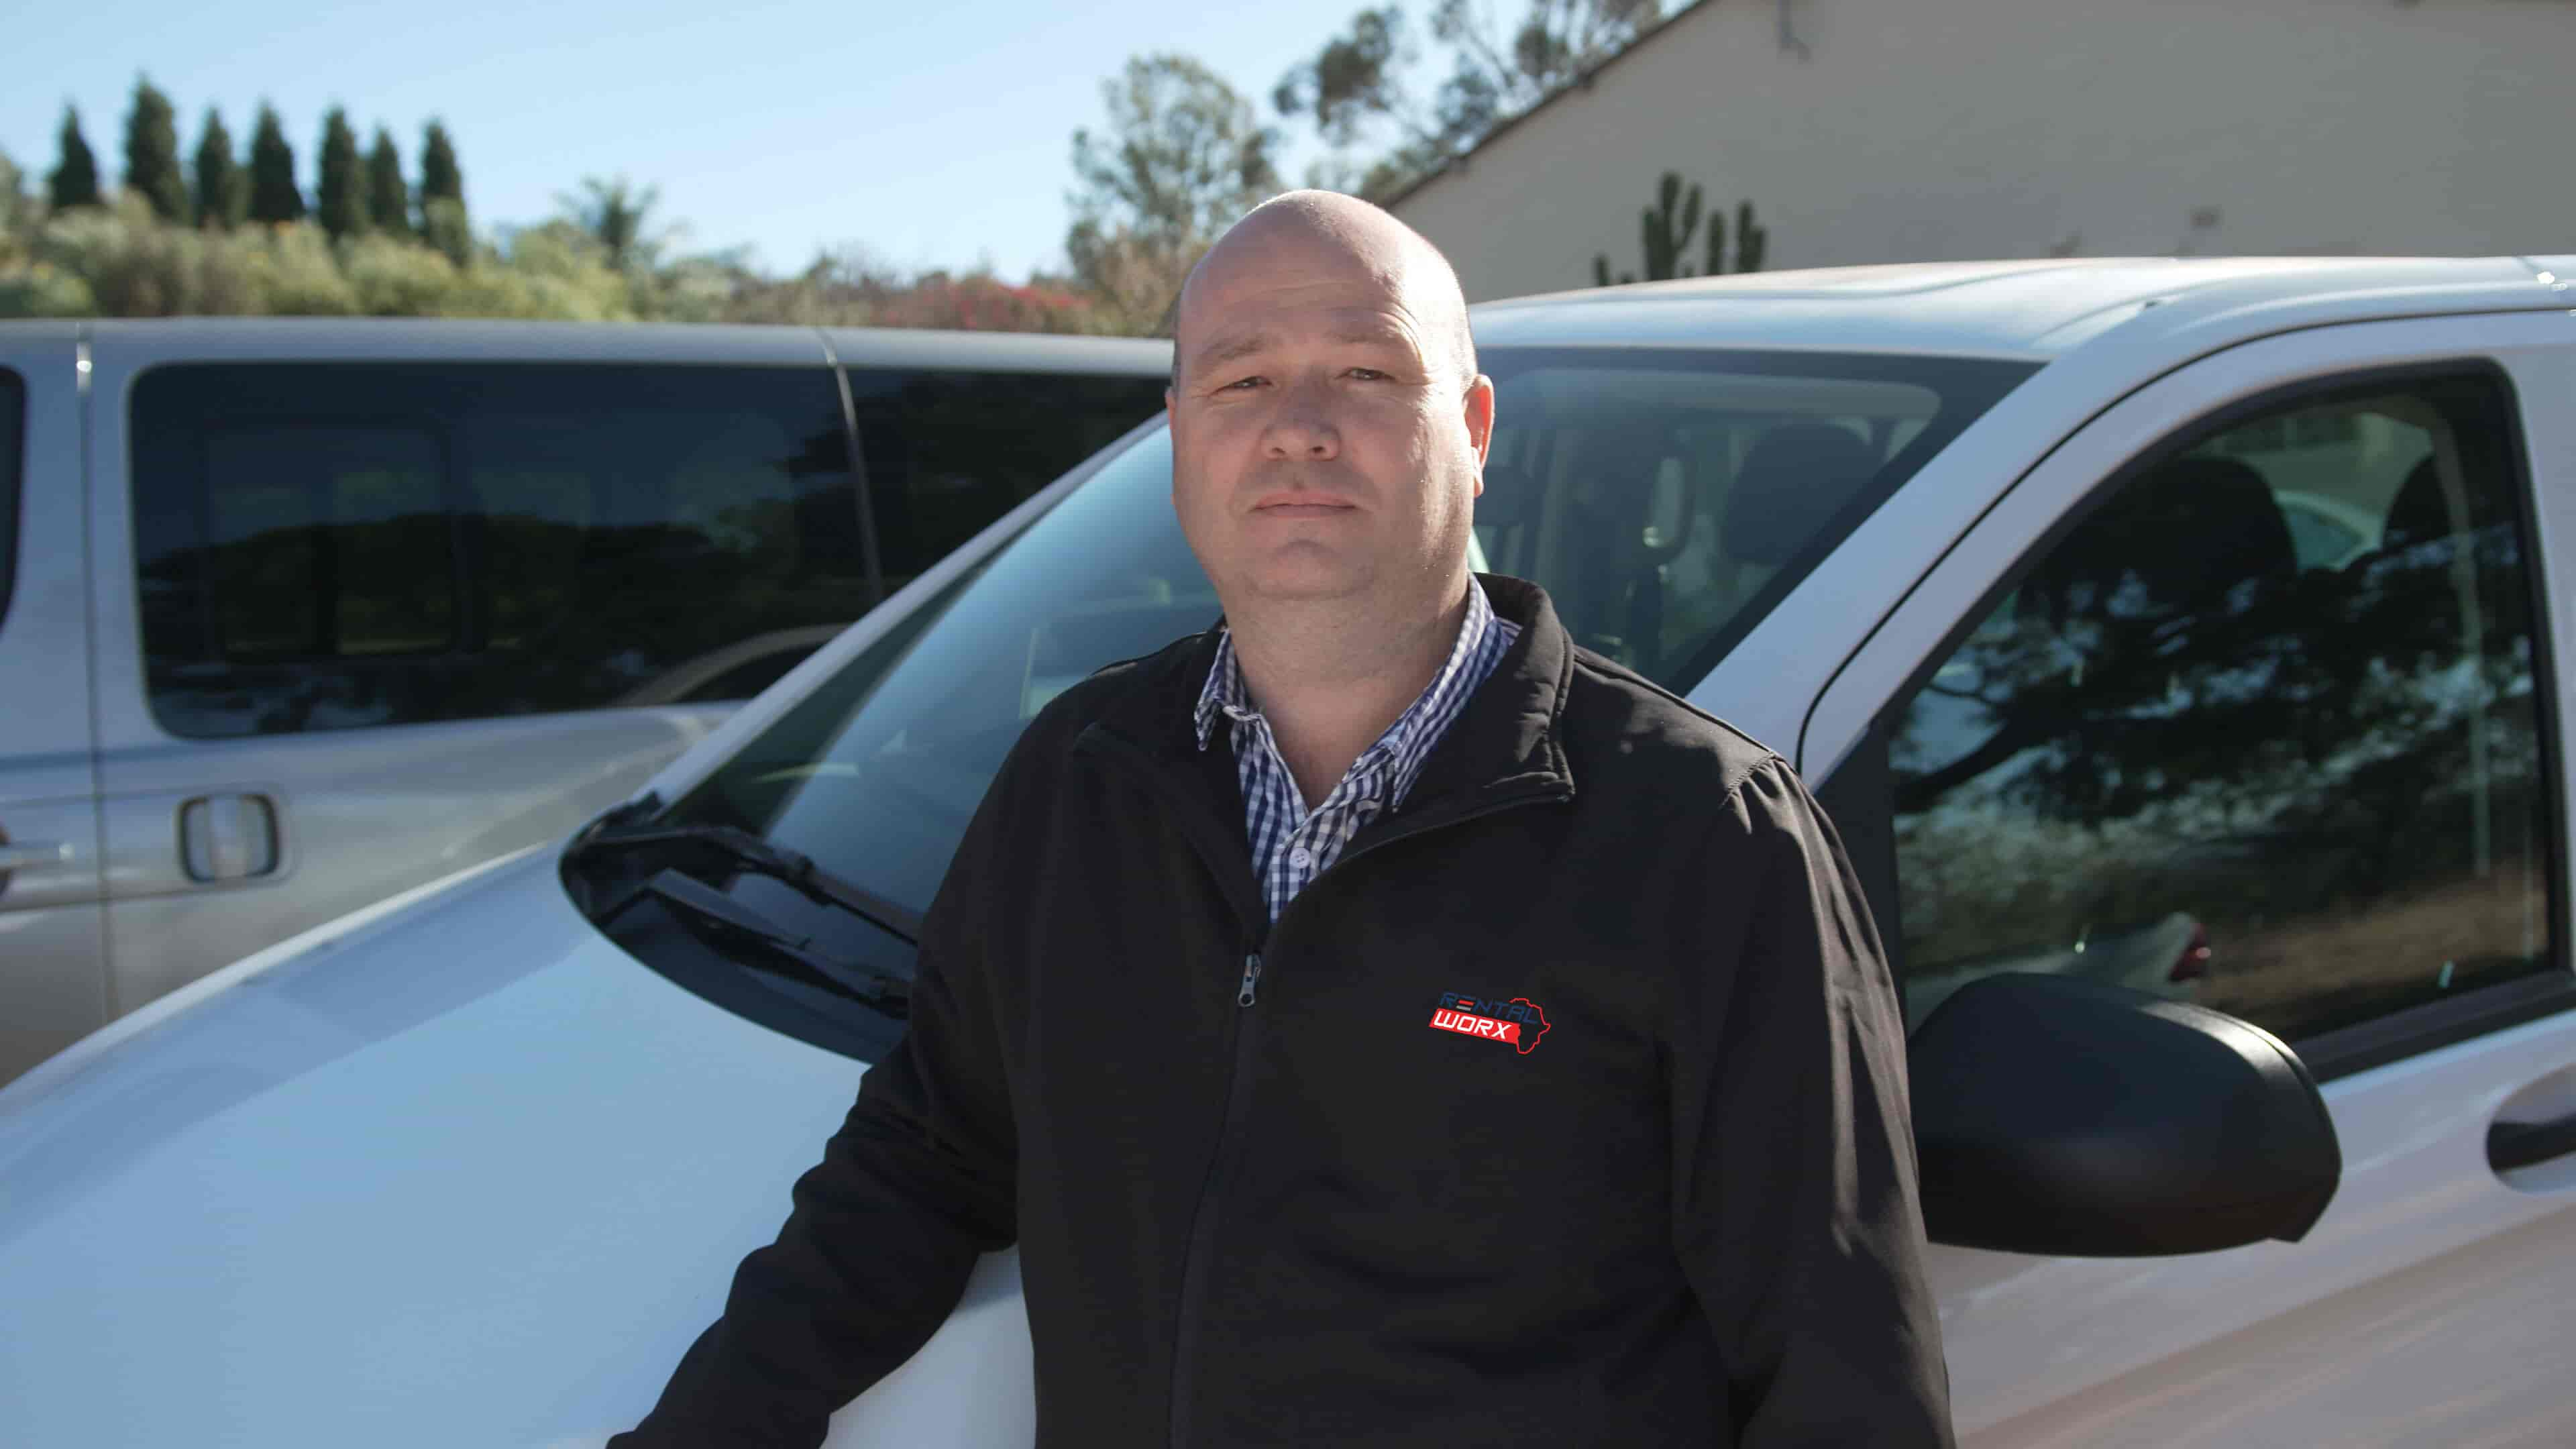 Johan Kruger from RentalWorx, a leasing company, stands in in front of his company's rental passenger van.